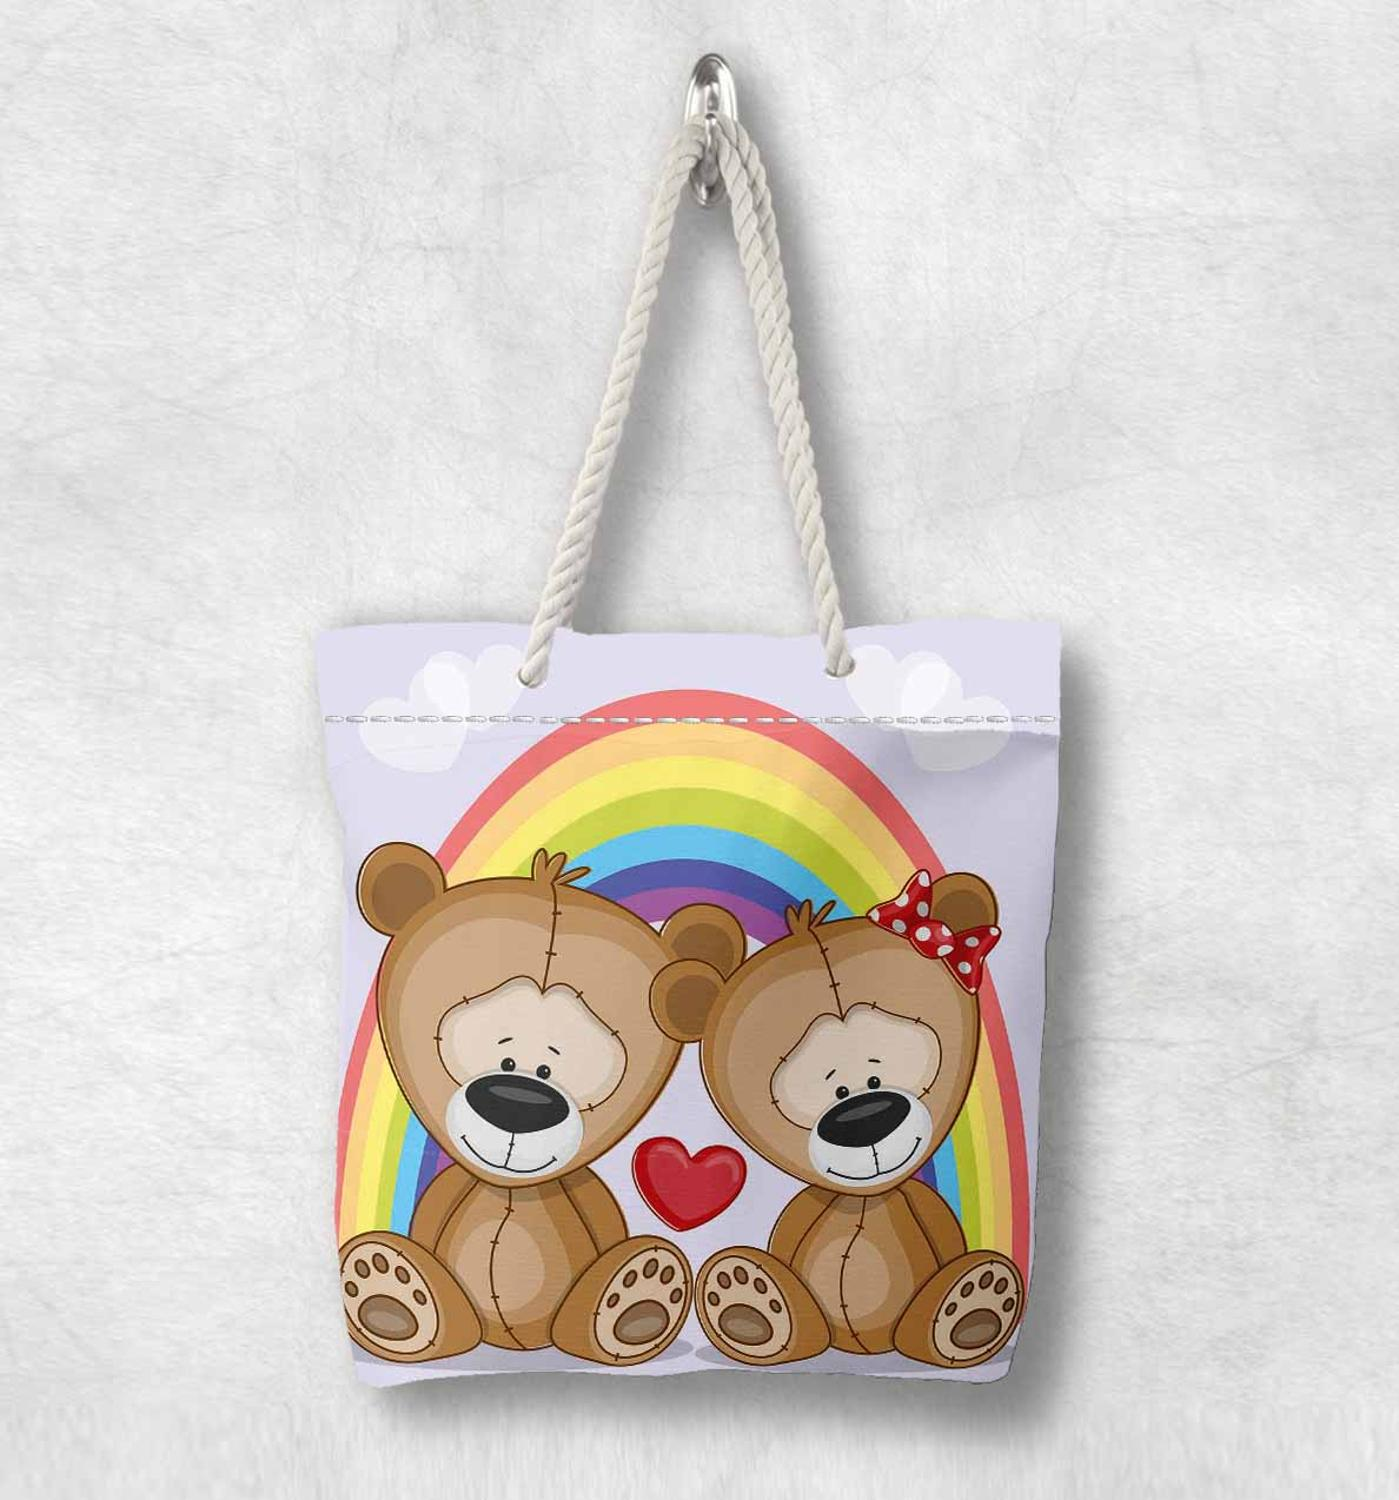 Else Funny Colored Rainbow Bears New Fashion White Rope Handle Canvas Bag Cotton Canvas Zippered Tote Bag Shoulder Bag